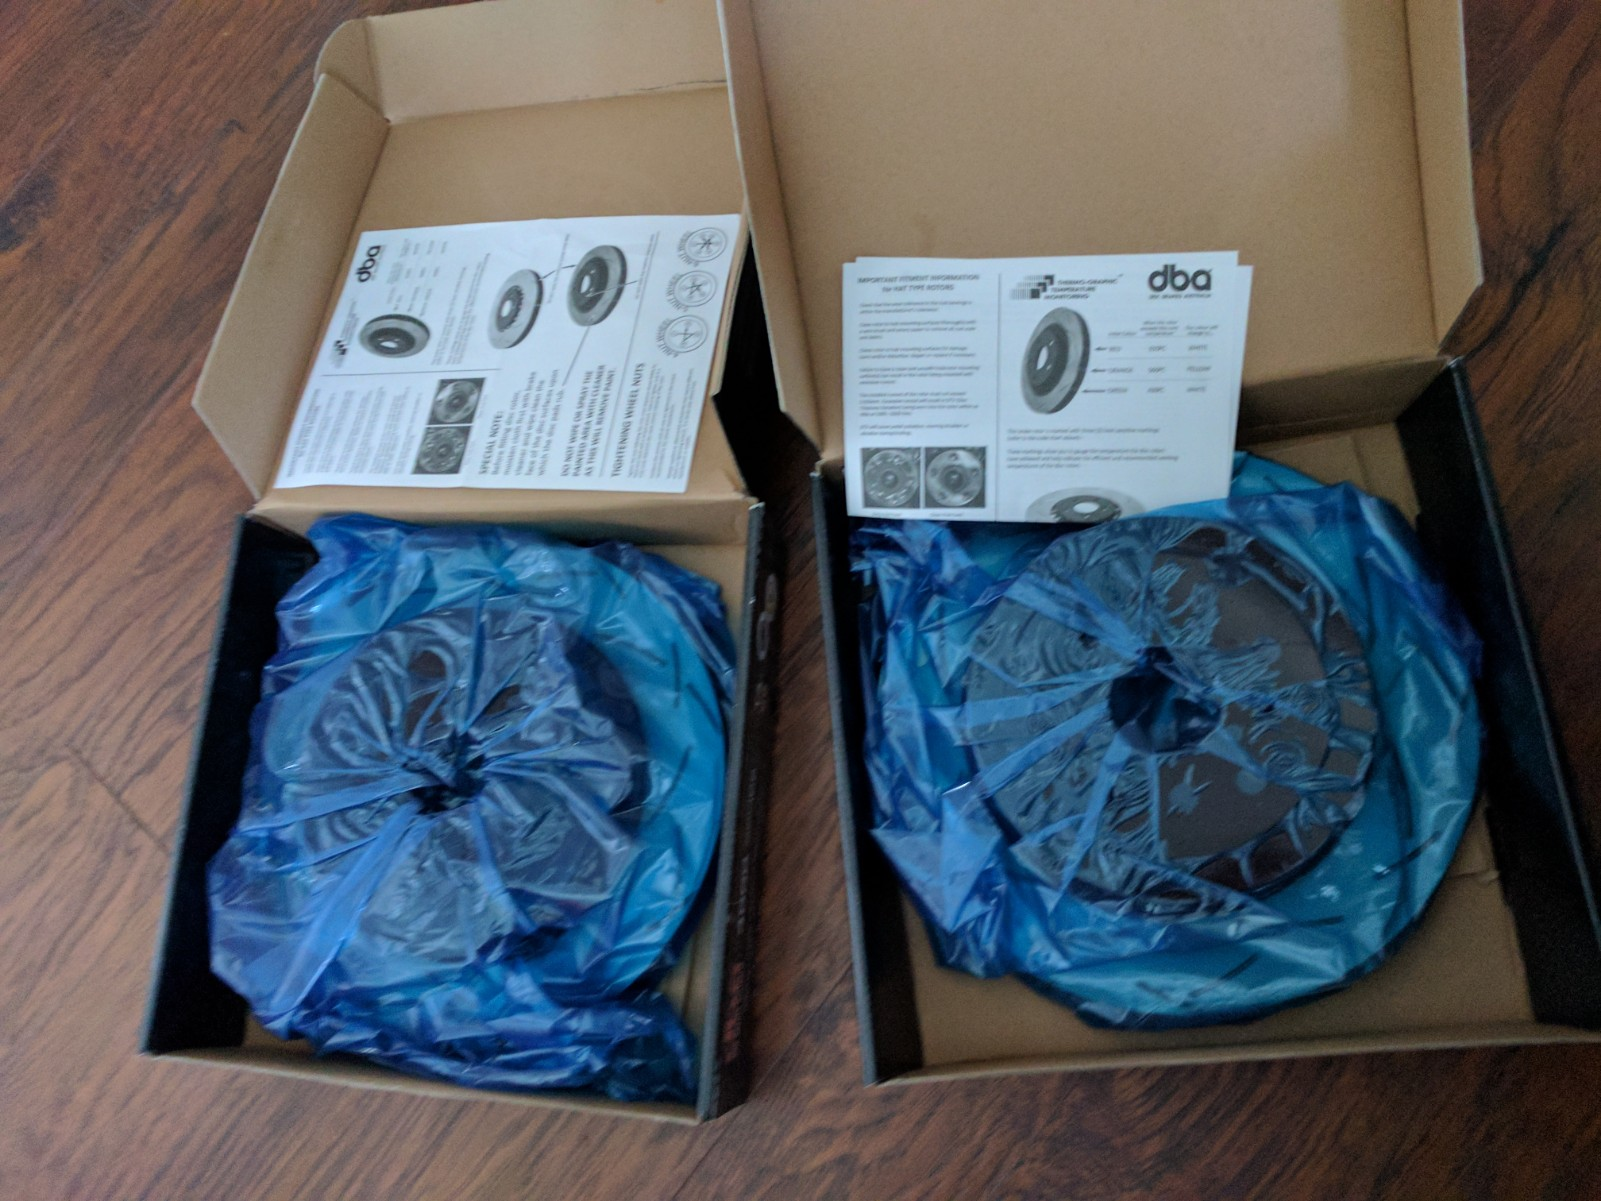 New DBA T3 4000 Rear Rotors-rotor2-jpg